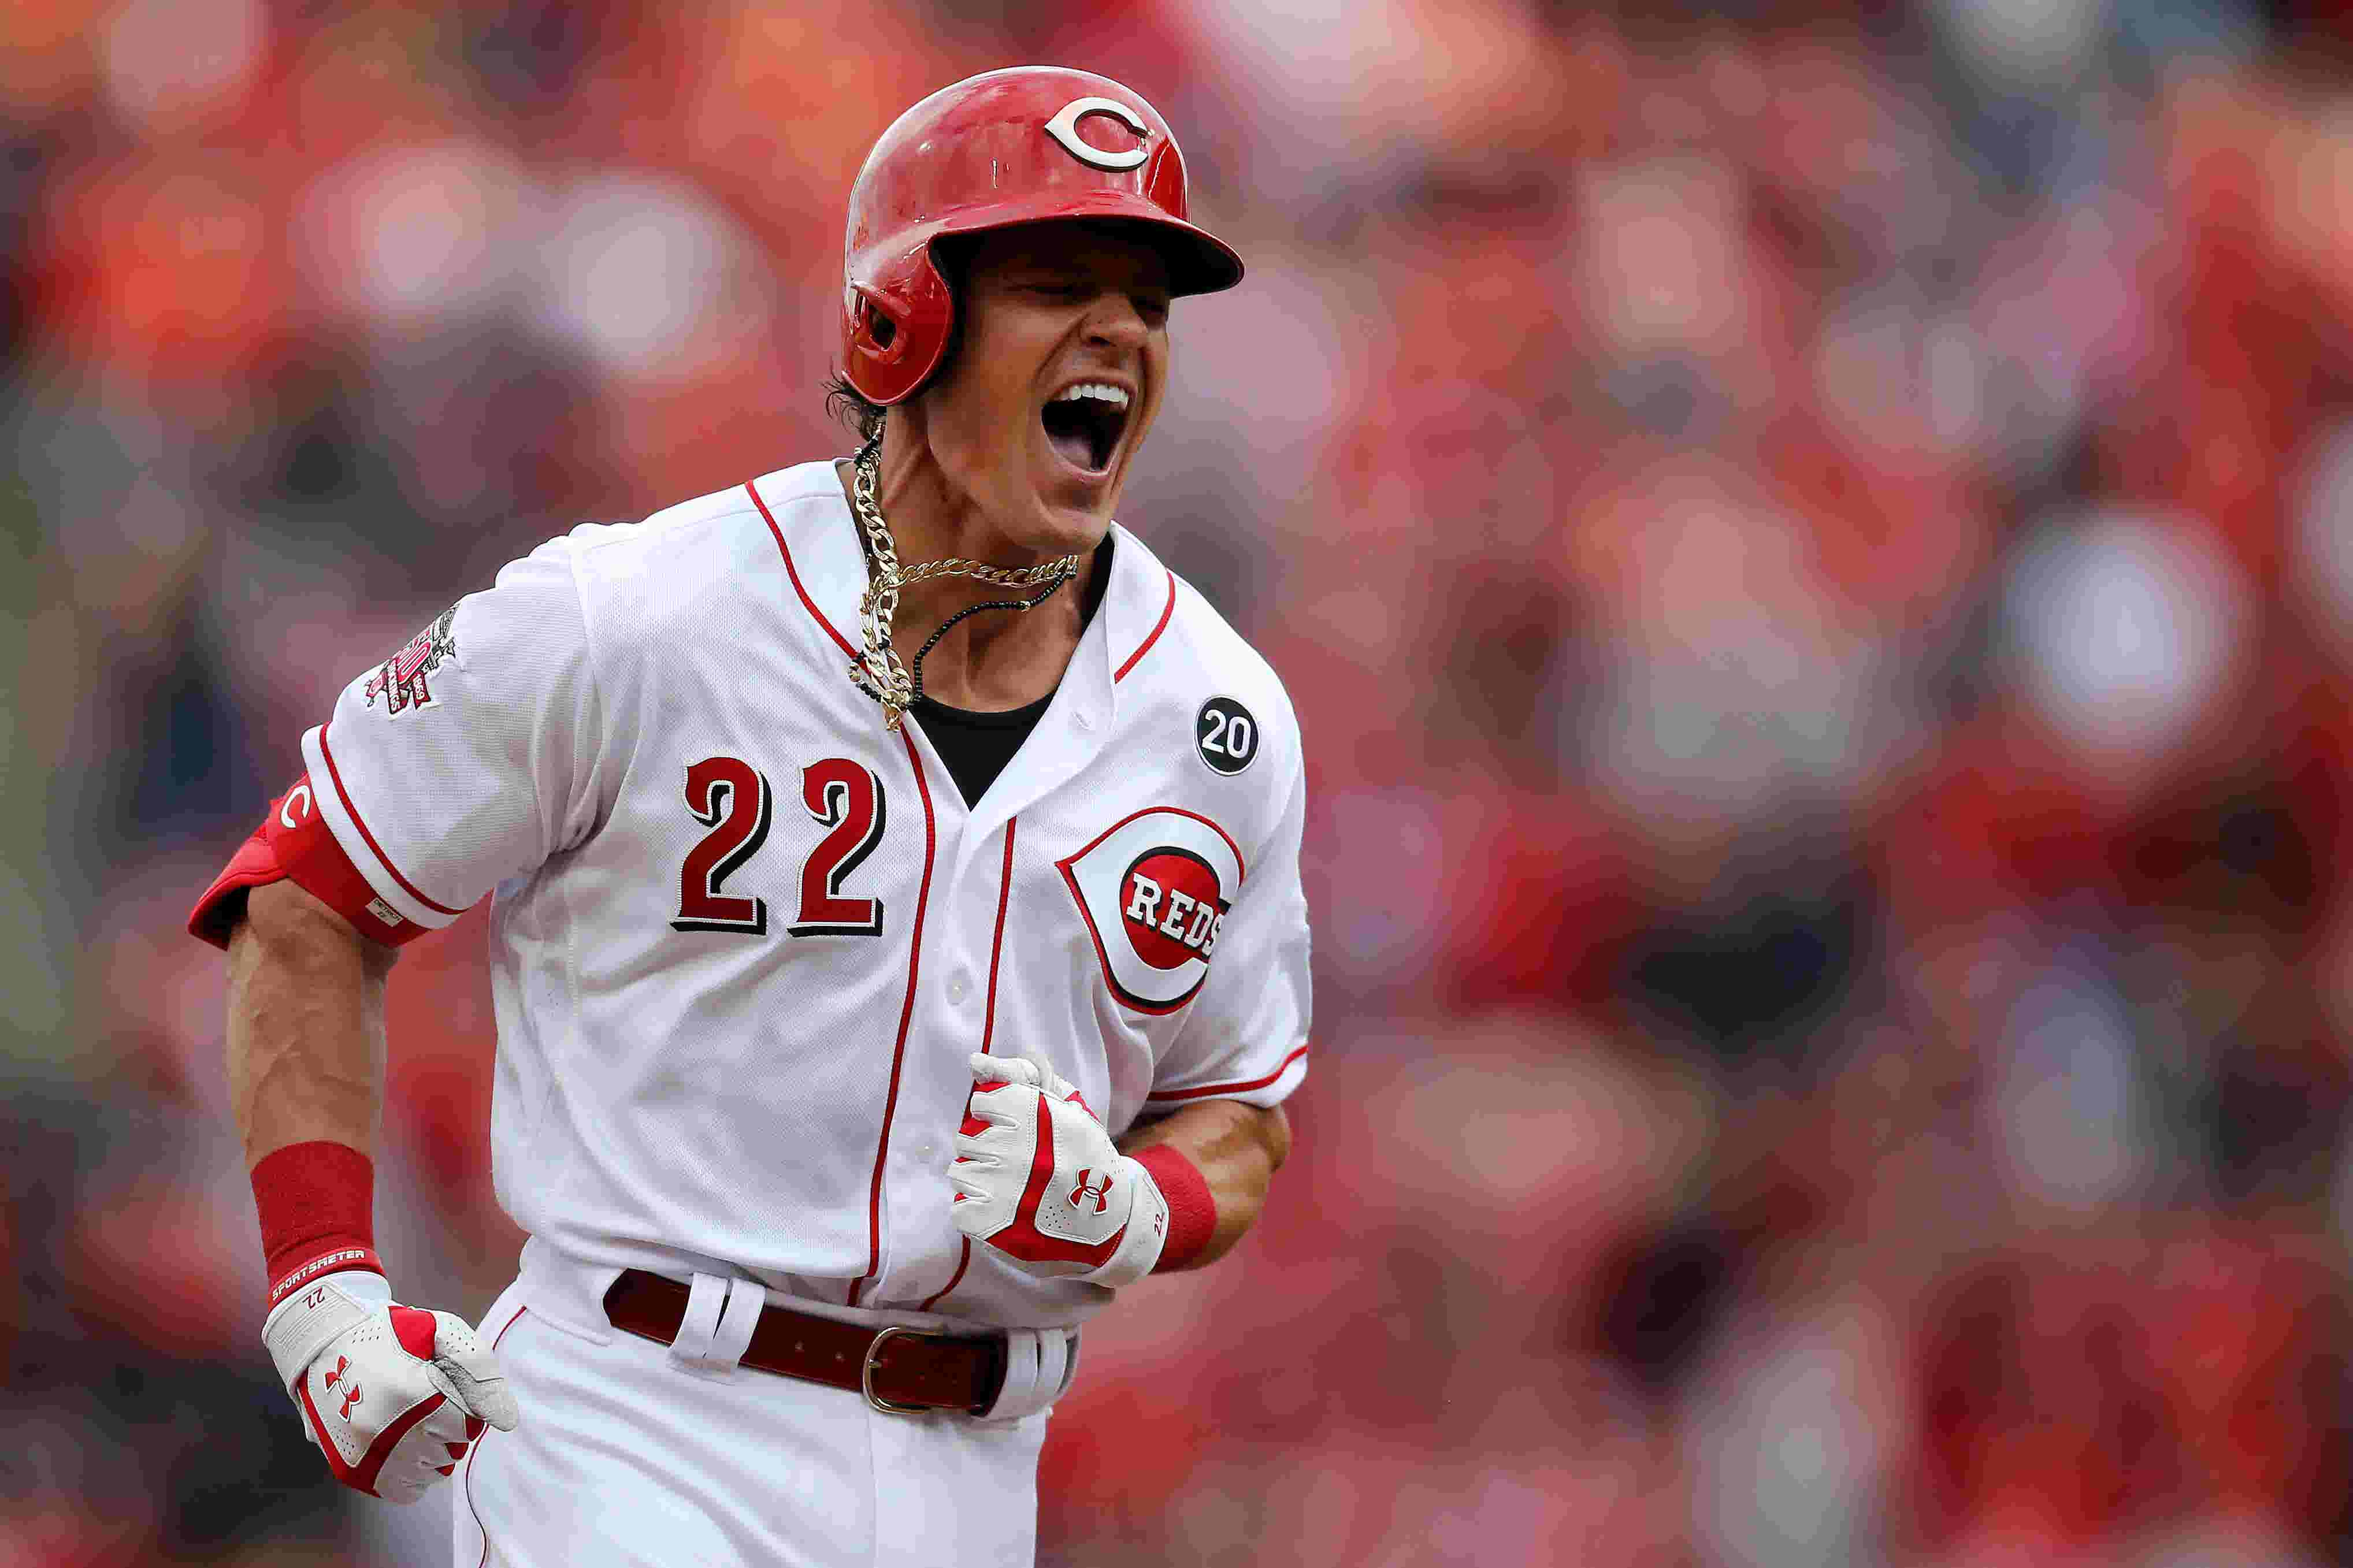 Cincinnati Reds manager David Bell's first game gives second-guessers plenty to talk about